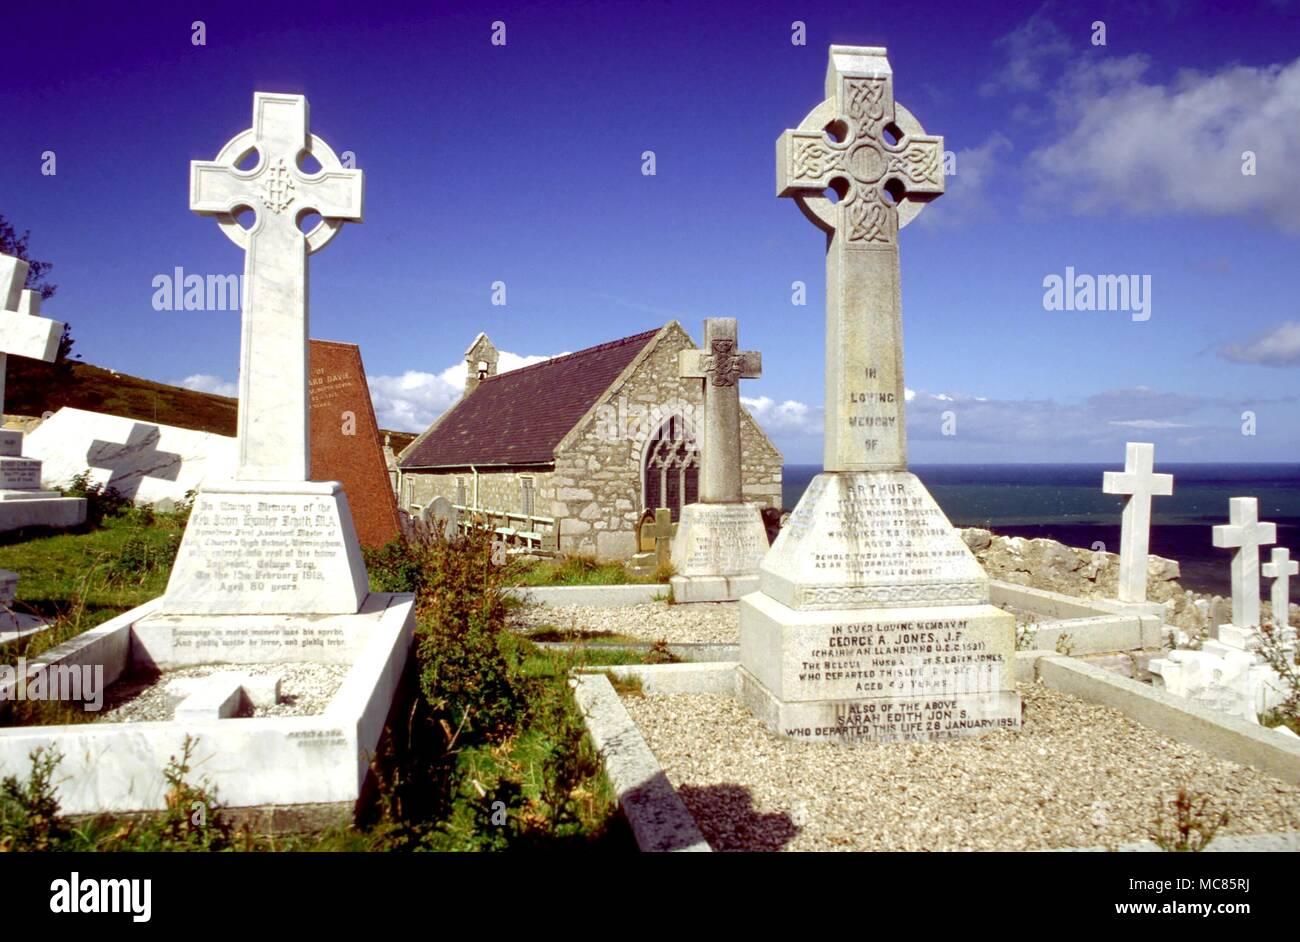 Graveyard St Tudnos Church Great Orme Symbols On Tombstones Stock